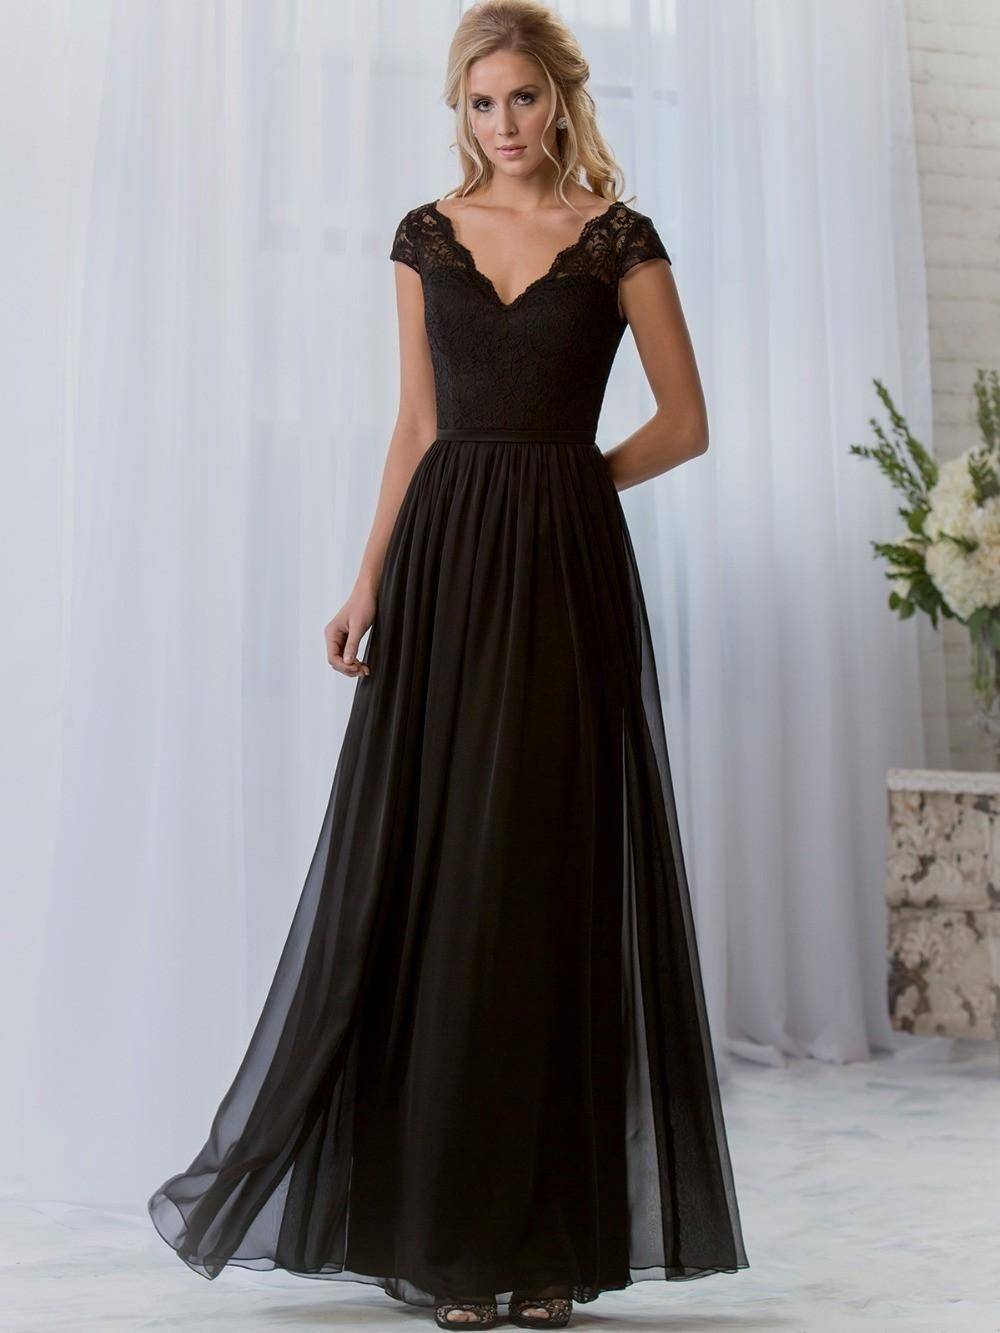 Image result for bridesmaid dresses long and black wedding wear image result for bridesmaid dresses long and black ombrellifo Gallery